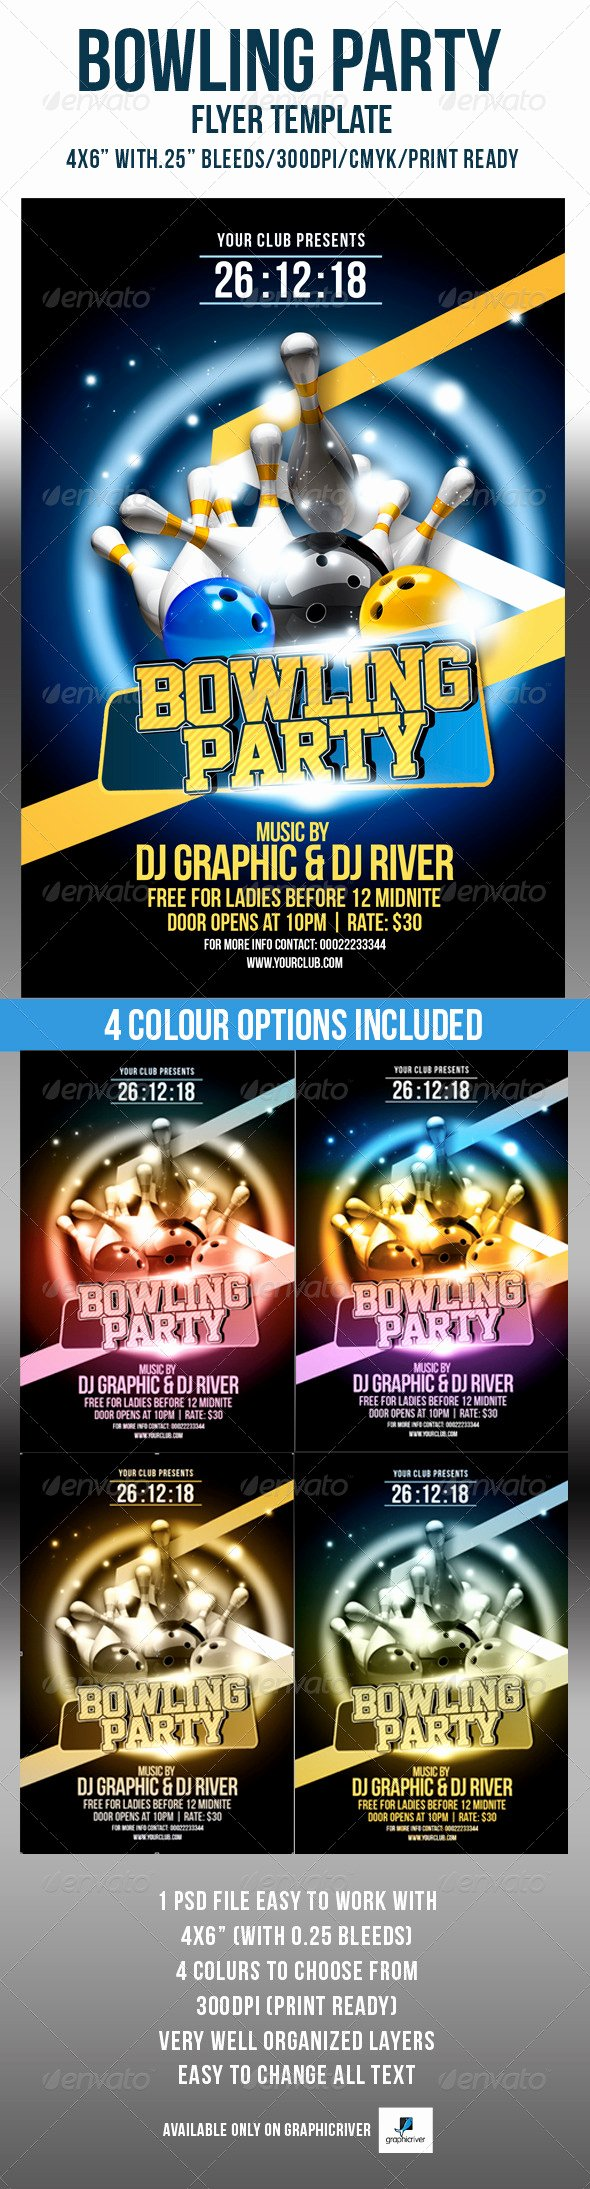 Bowling Flyer Template Free Best Of Bowling Party Flyer Template by Crabsta52